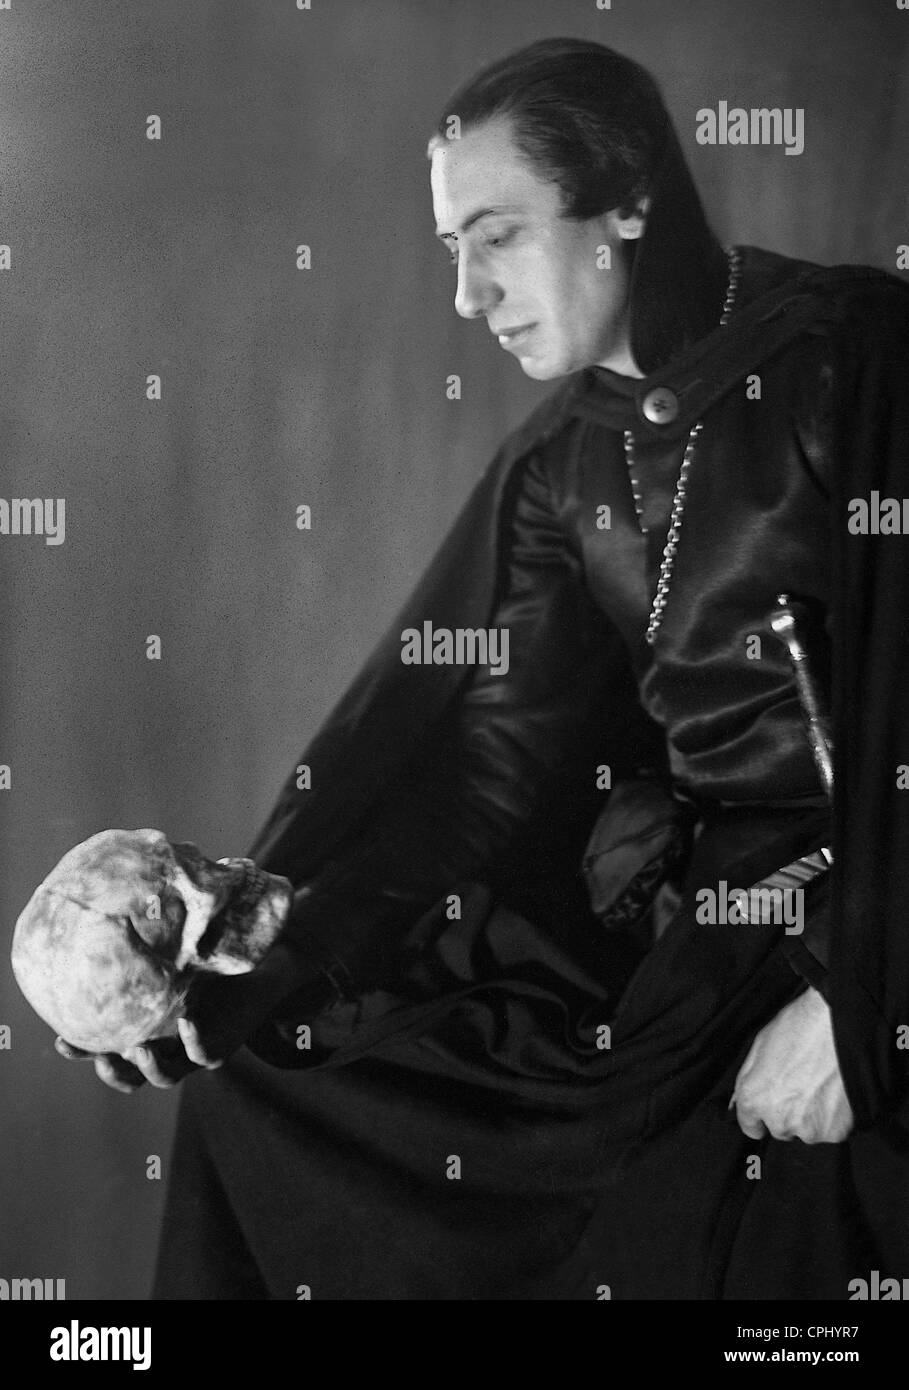 Willy Birgel in 'Hamlet', 1936 - Stock Image